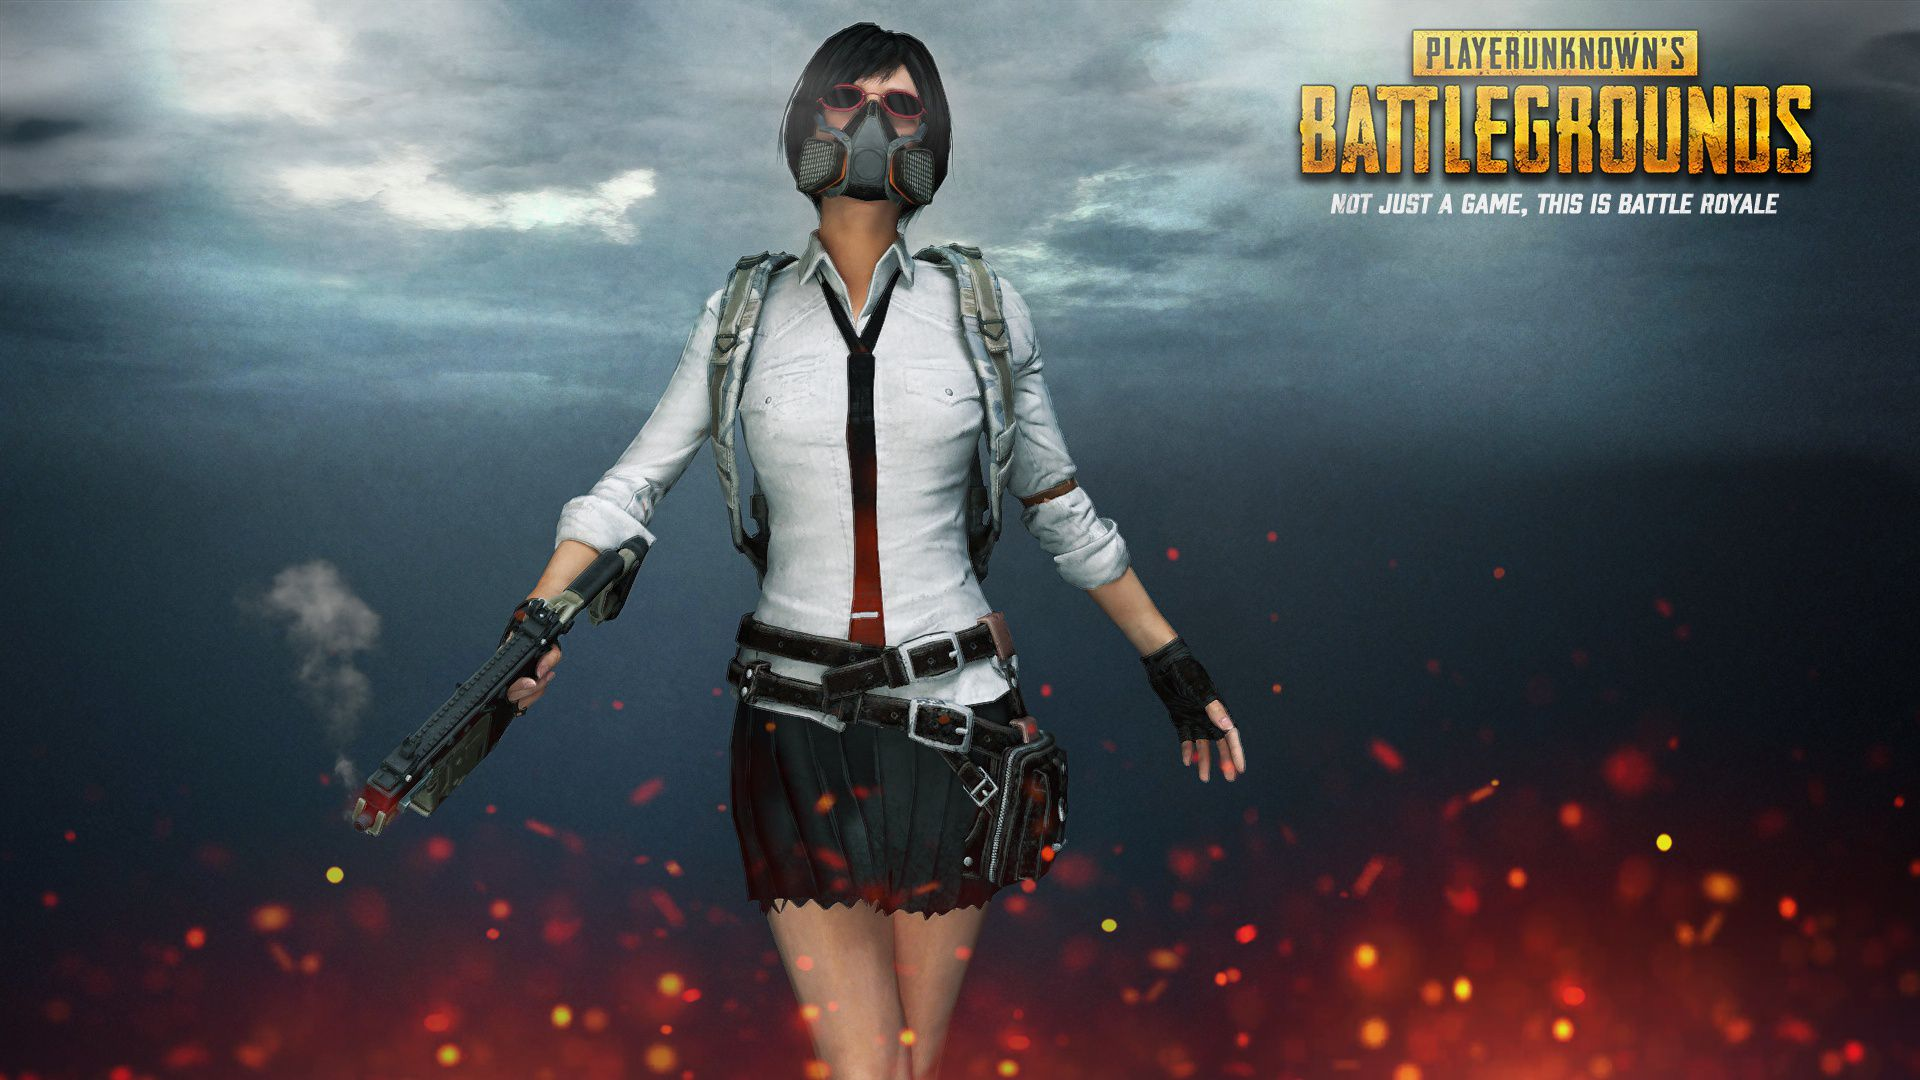 Download 1366x768 Pubg Mobile Characters Playerunknown S: PlayerUnknown's Battlegrounds: PUBG Wallpapers And Photos